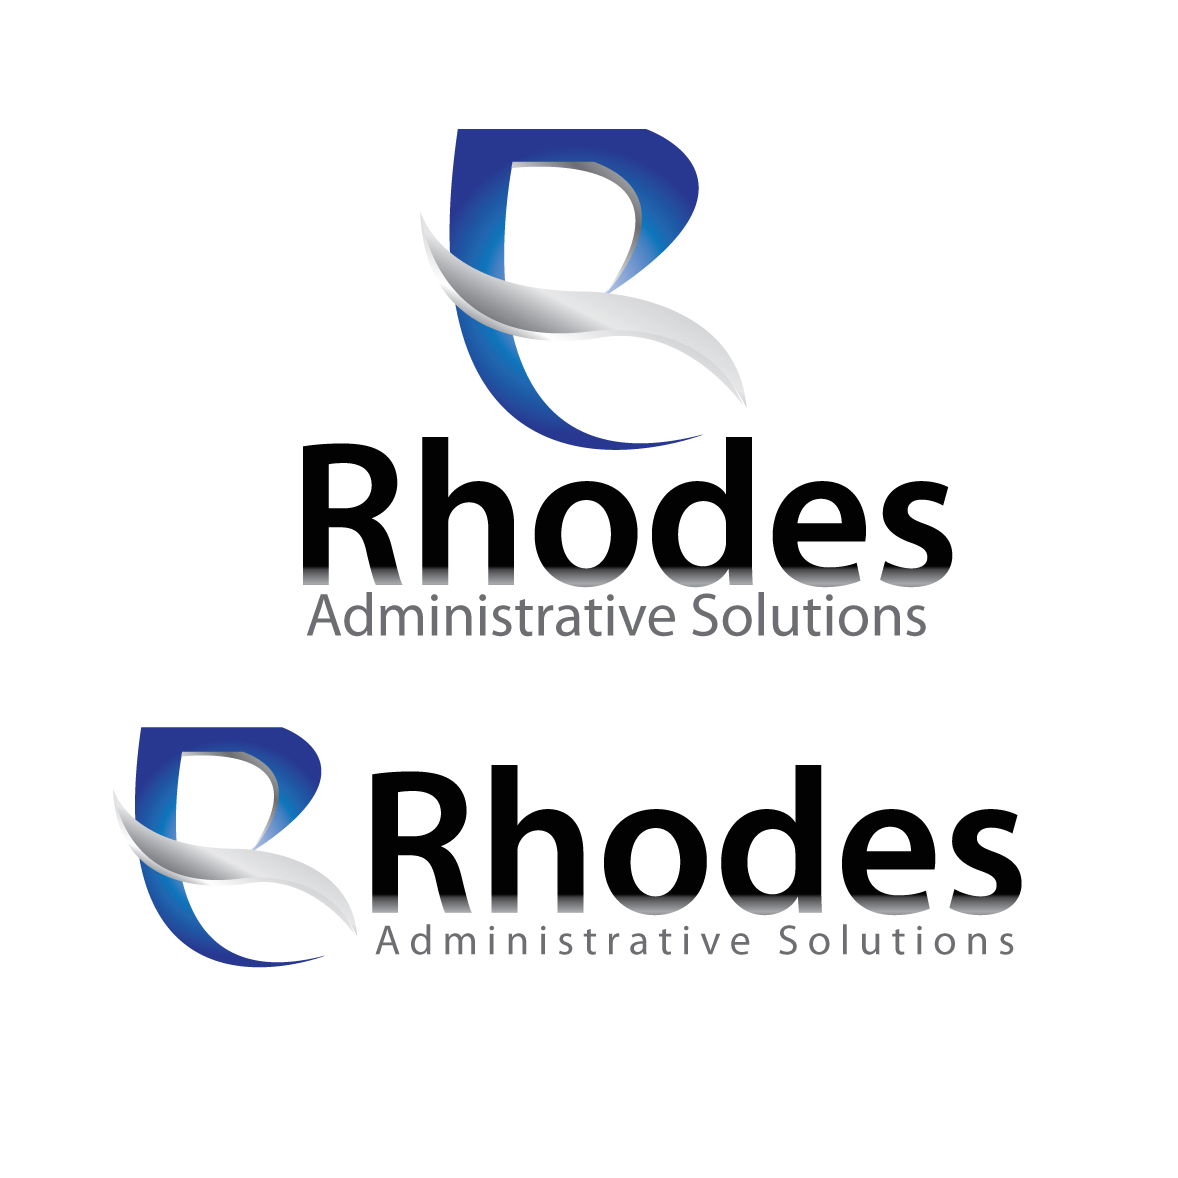 Logo Design by stormbighit - Entry No. 116 in the Logo Design Contest Rhodes Administrative Solutions.